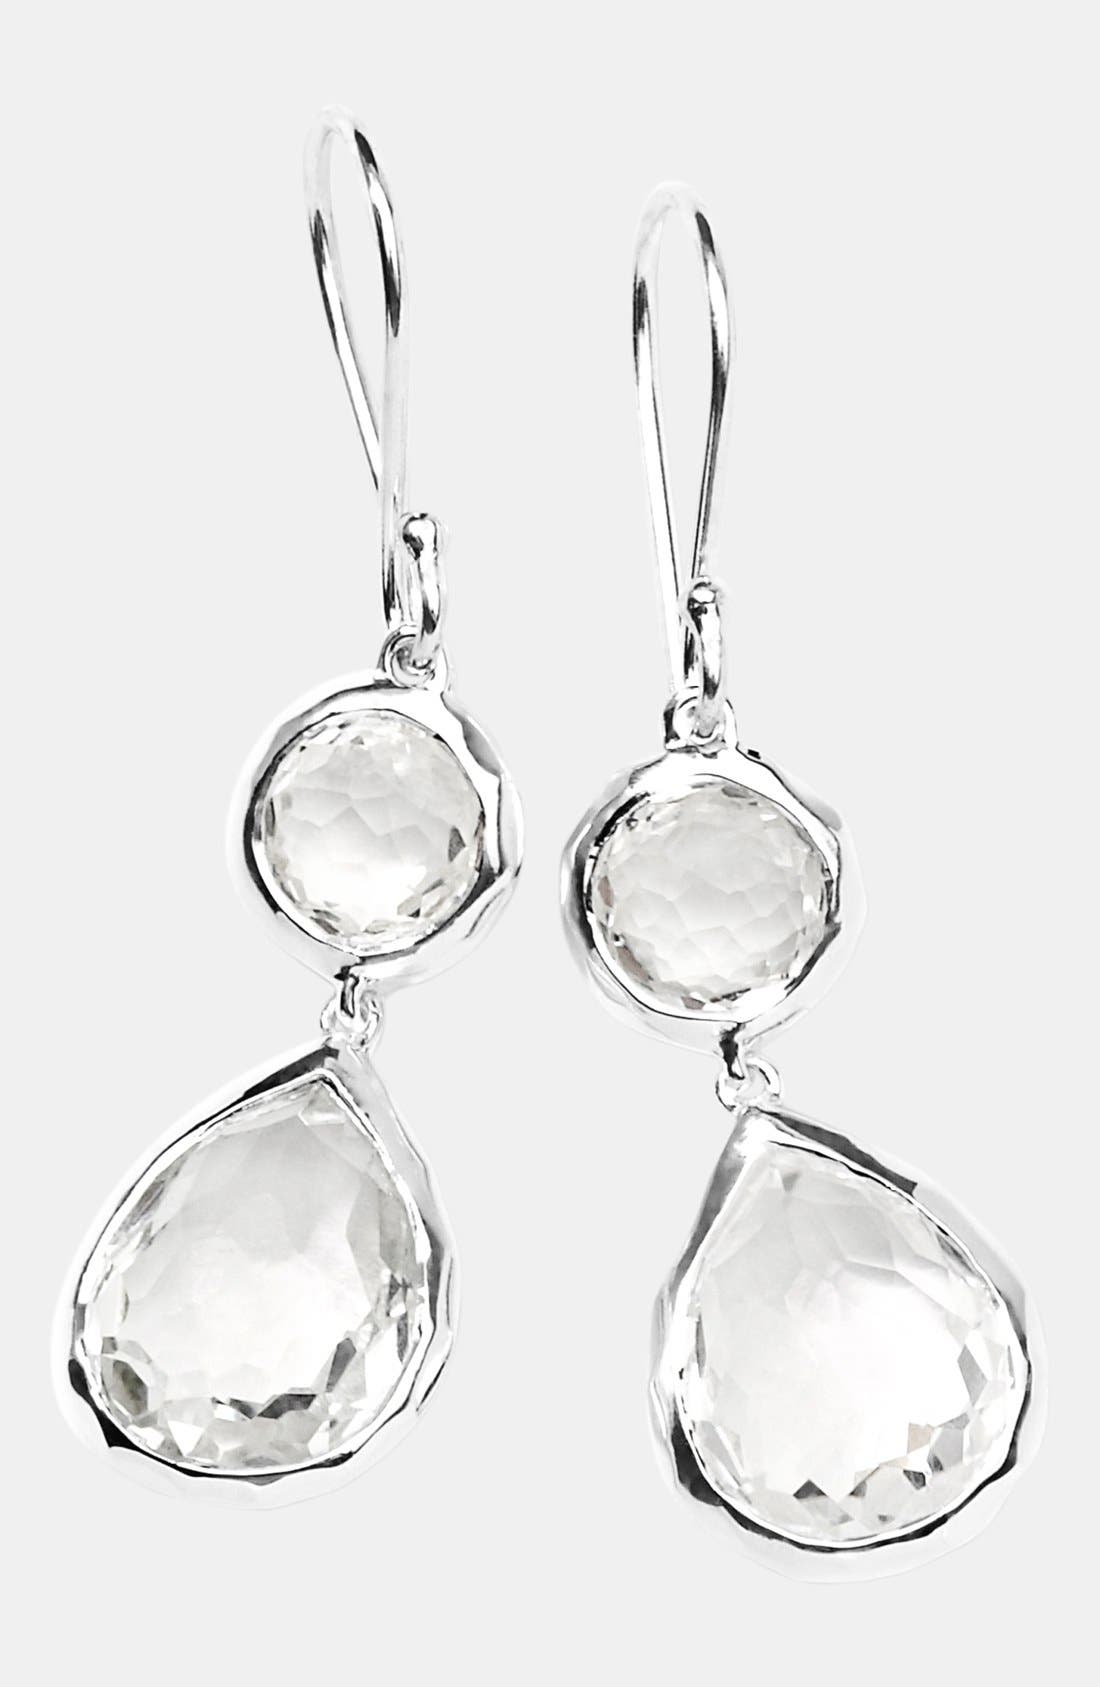 Alternate Image 1 Selected - Ippolita 'Wonderland' Double Drop Earrings (Online Only)